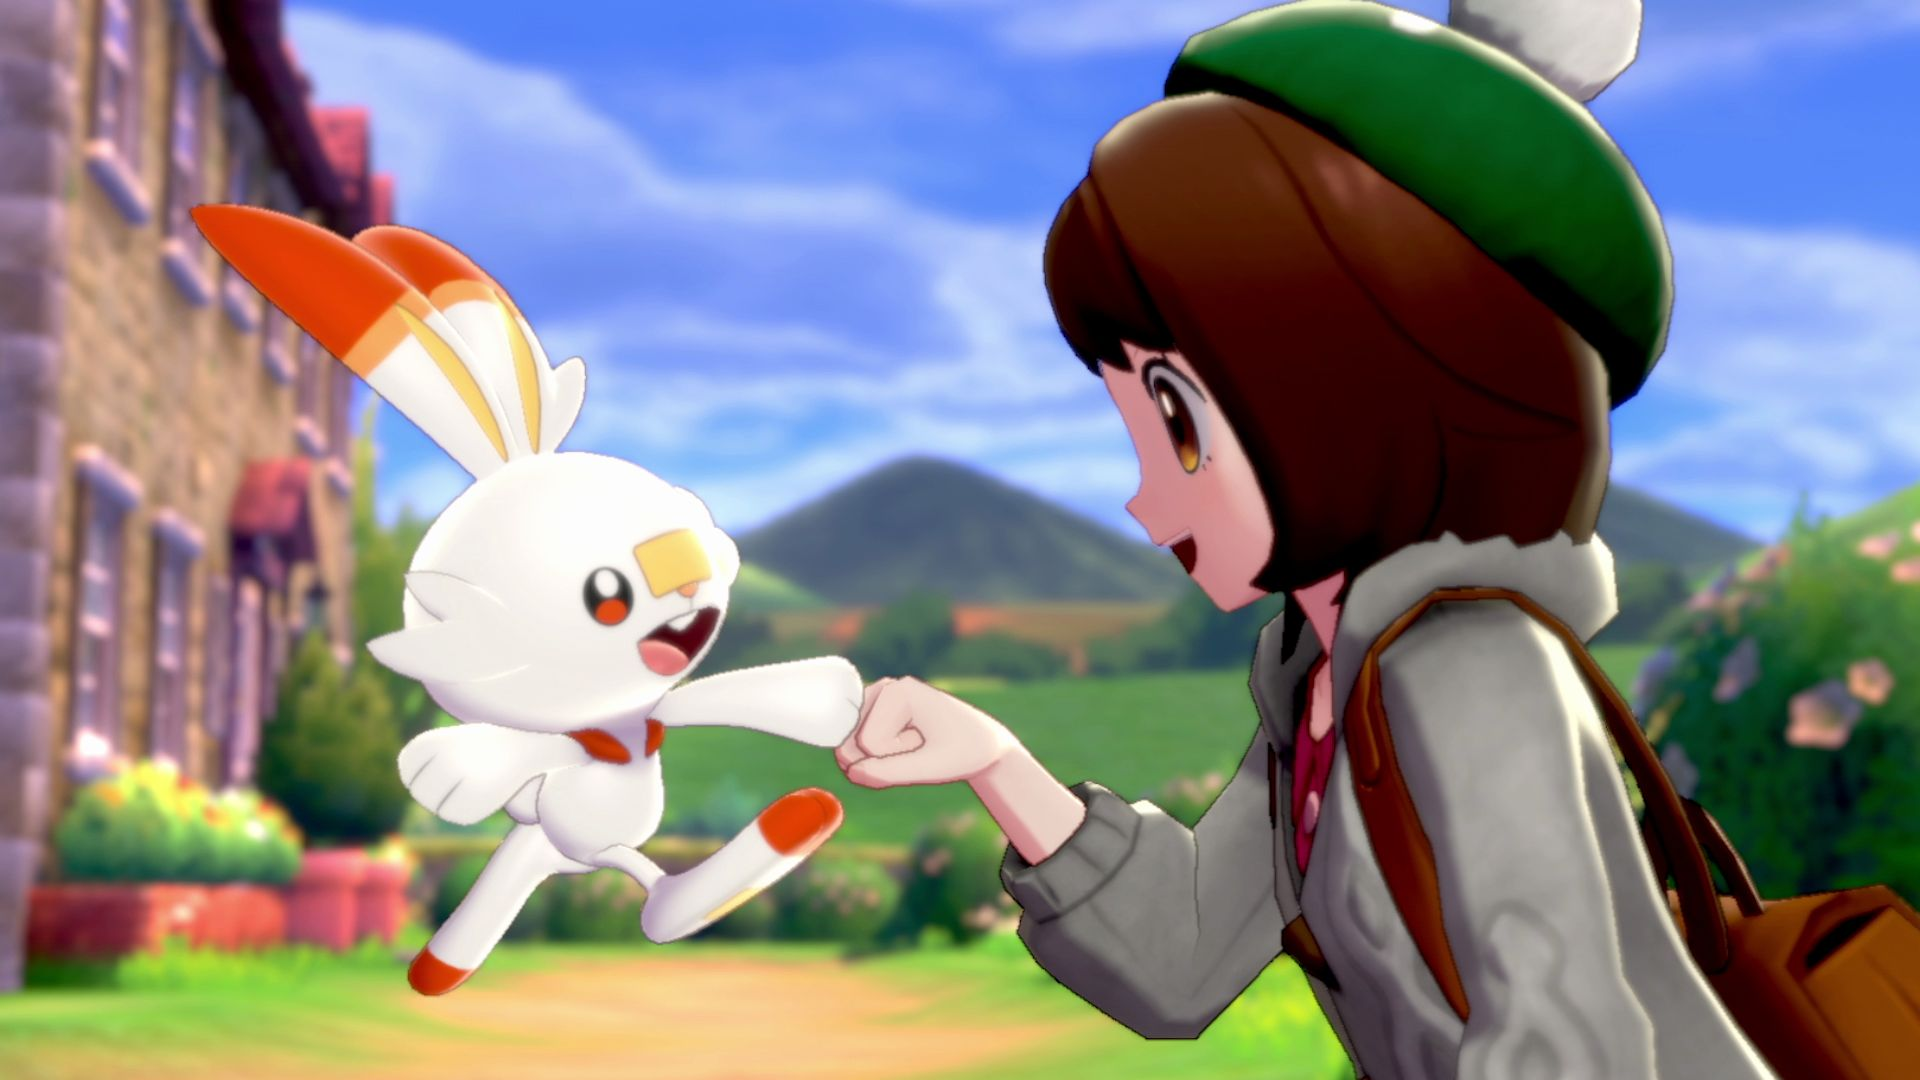 Pokemon Sword And Shield Are Releasing On November 15 Legendary